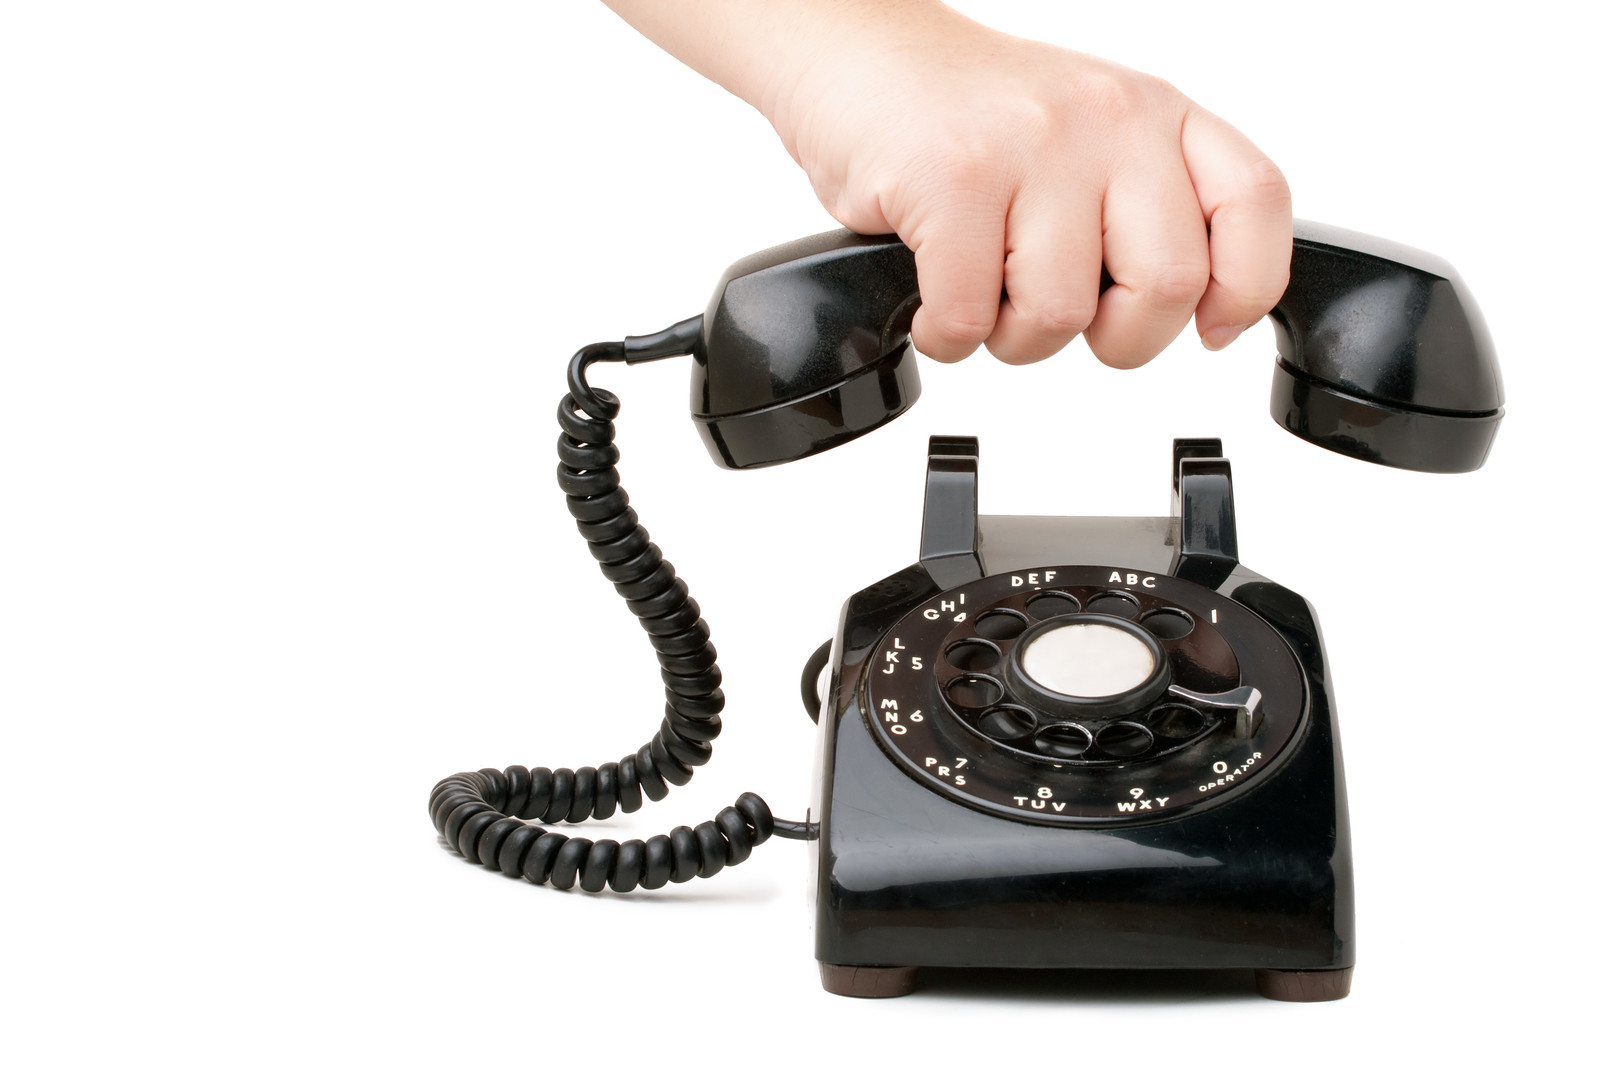 A hand hanging up a handset of an old black vintage rotary style telephone